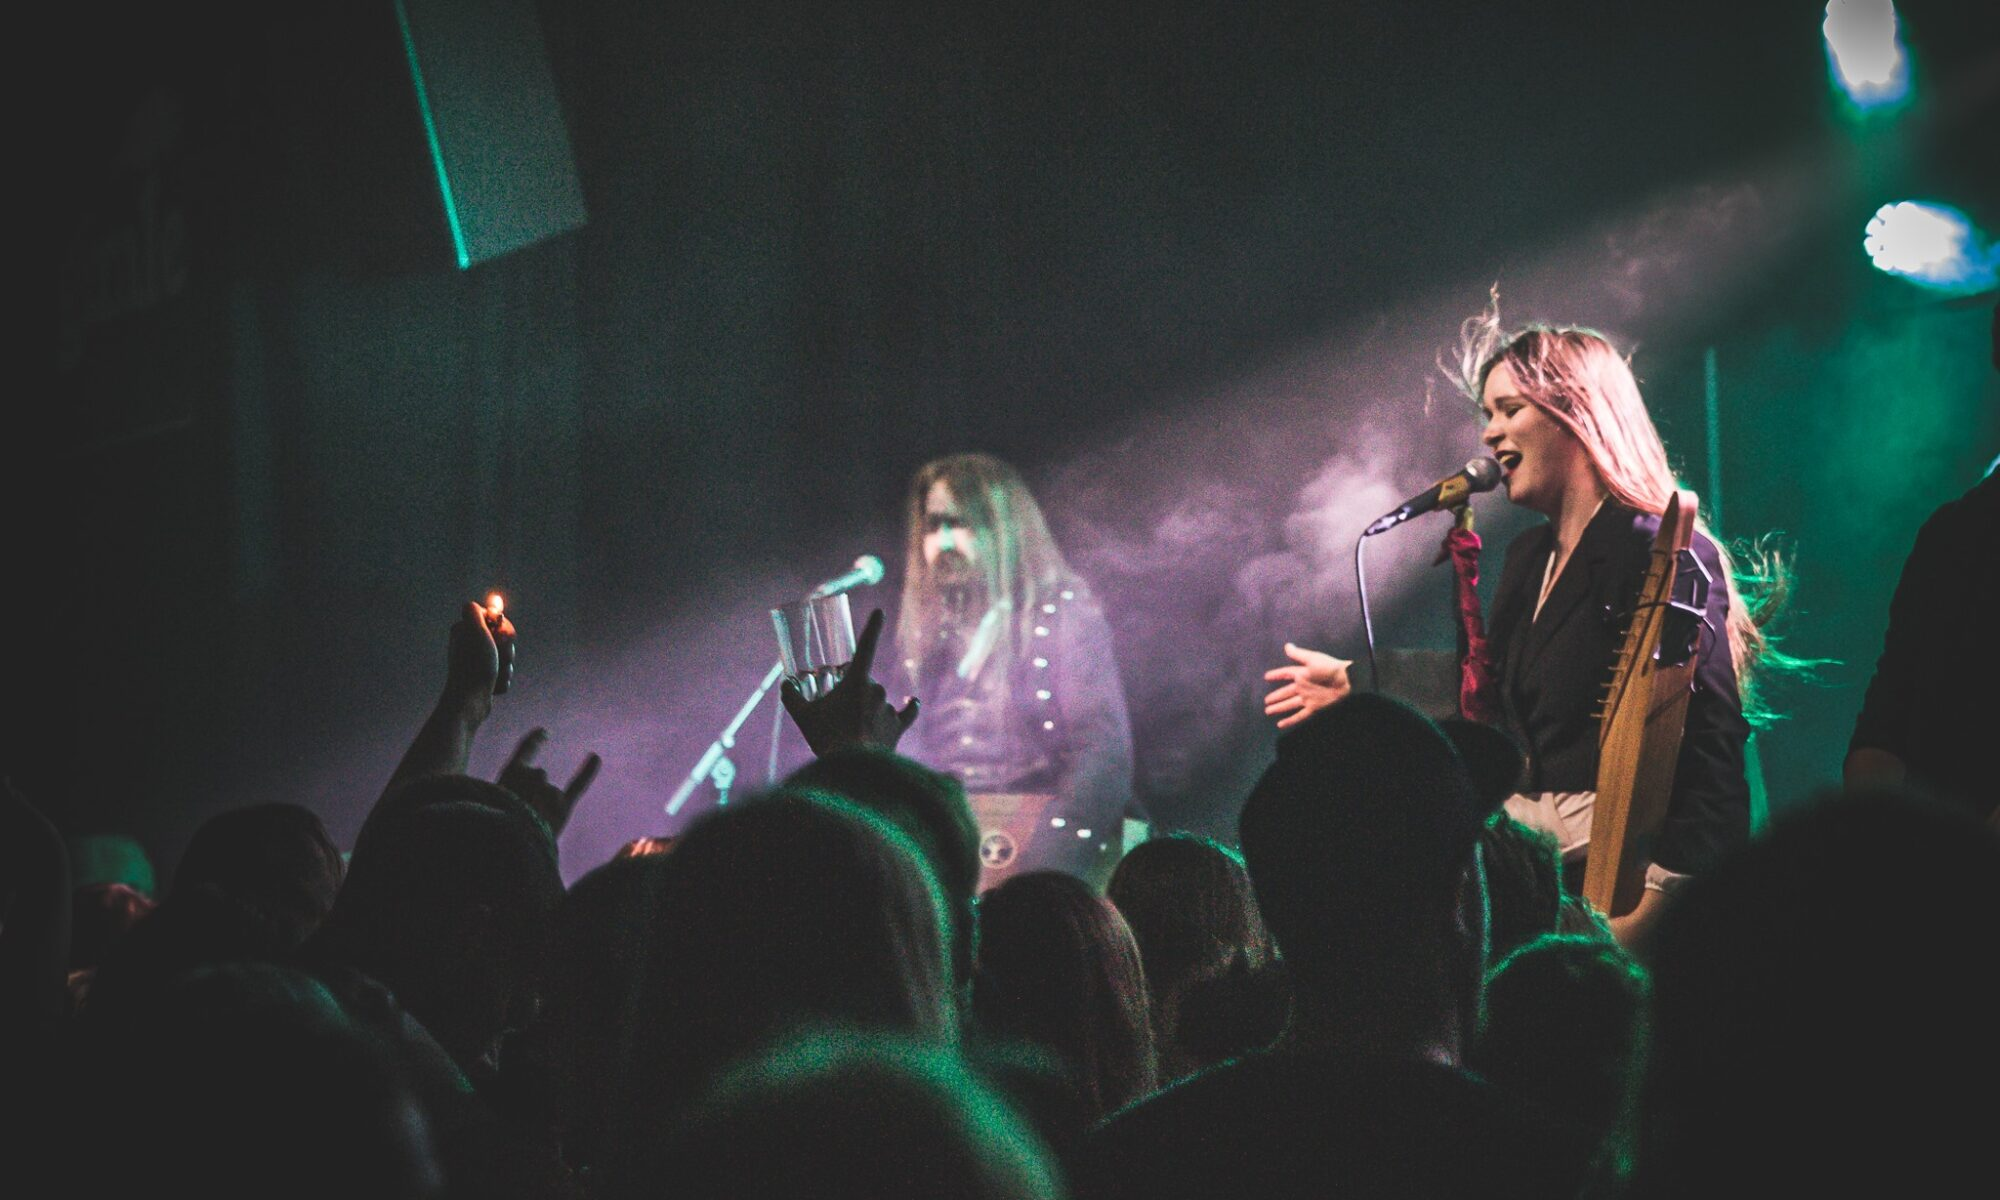 Ethereal Kingdoms live at Wintersun support show at Gimle. Sofia Schmidt performing My Kantele by Amorphis in front of crowd.